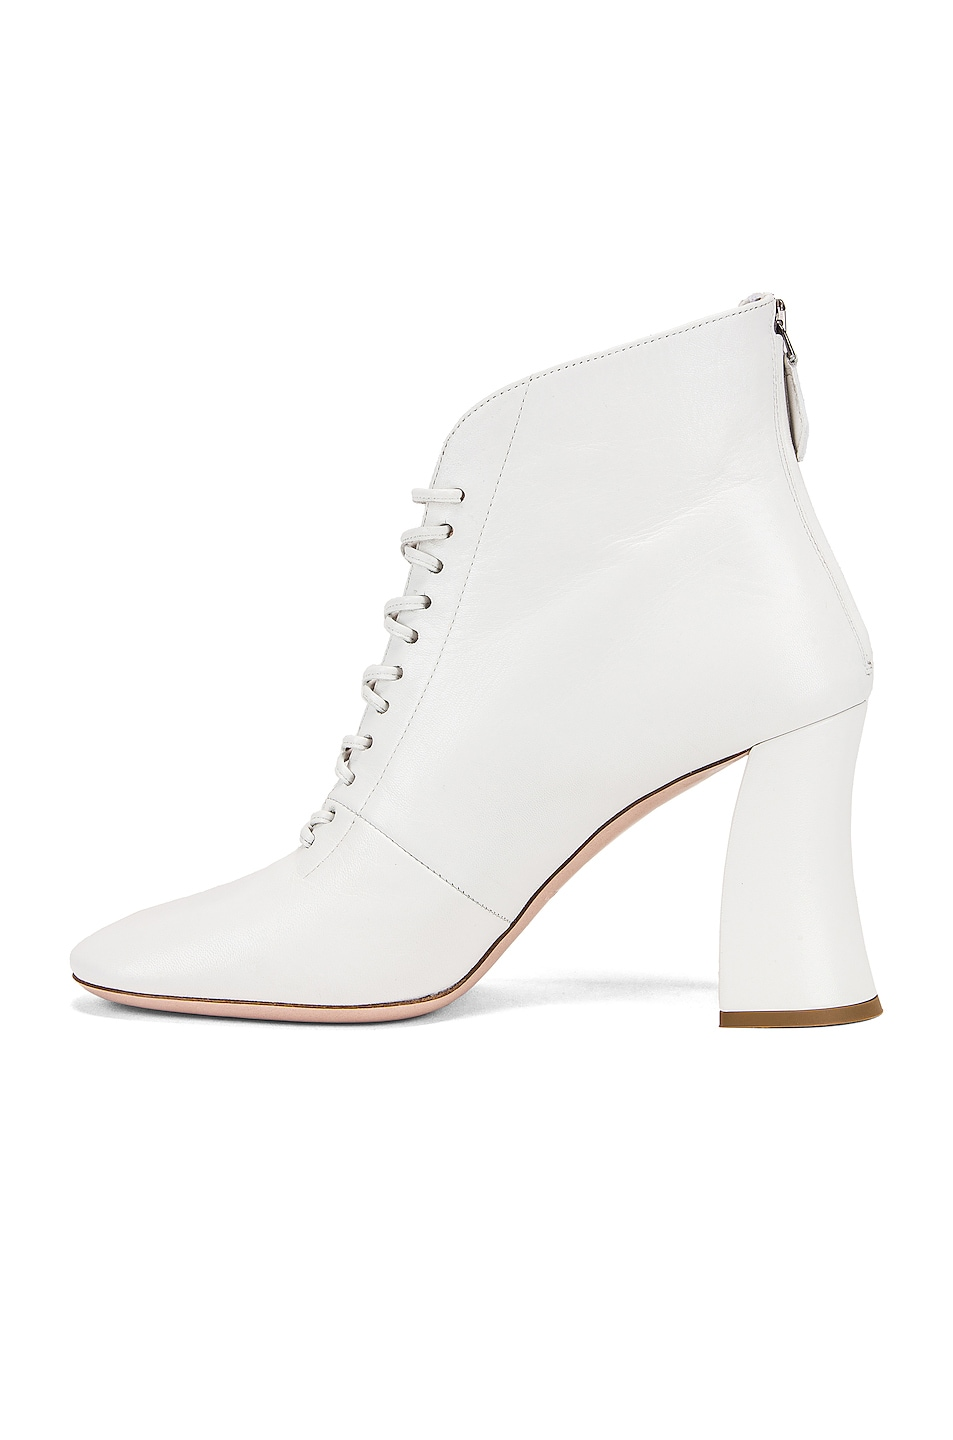 Image 5 of Miu Miu Lace Up Ankle Boots in White